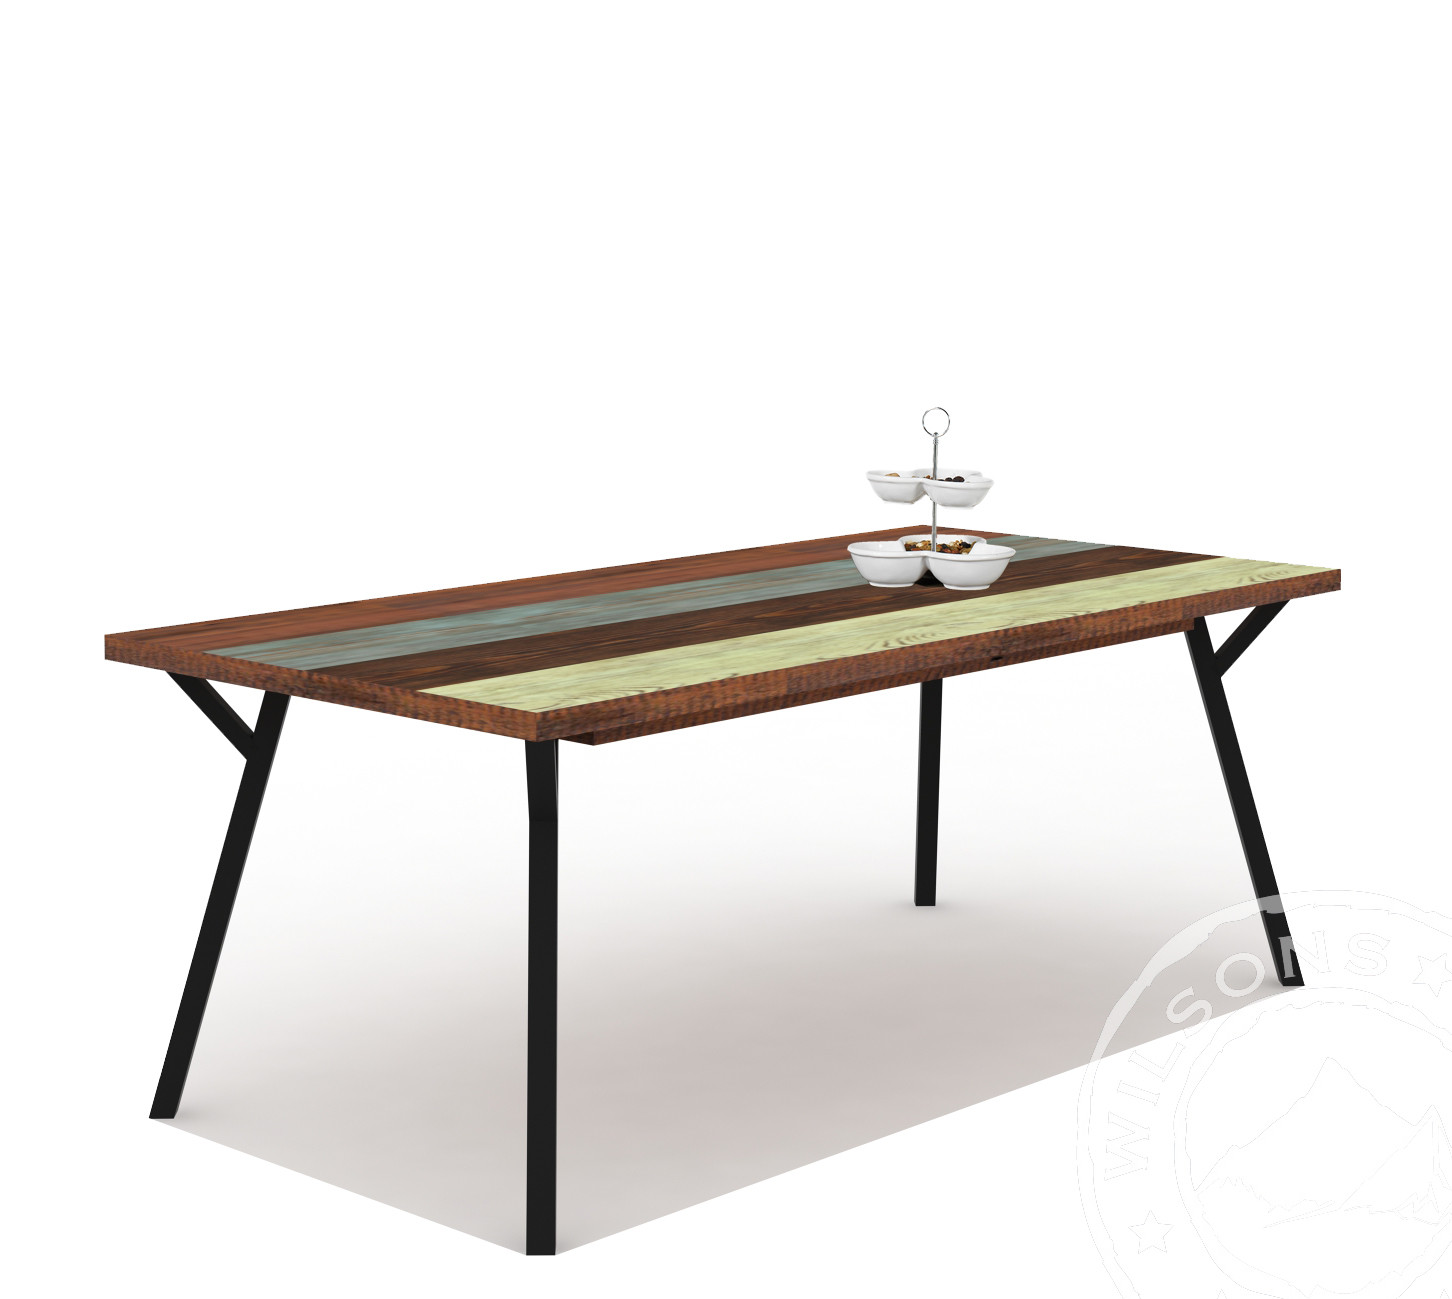 Verona (Dining table)